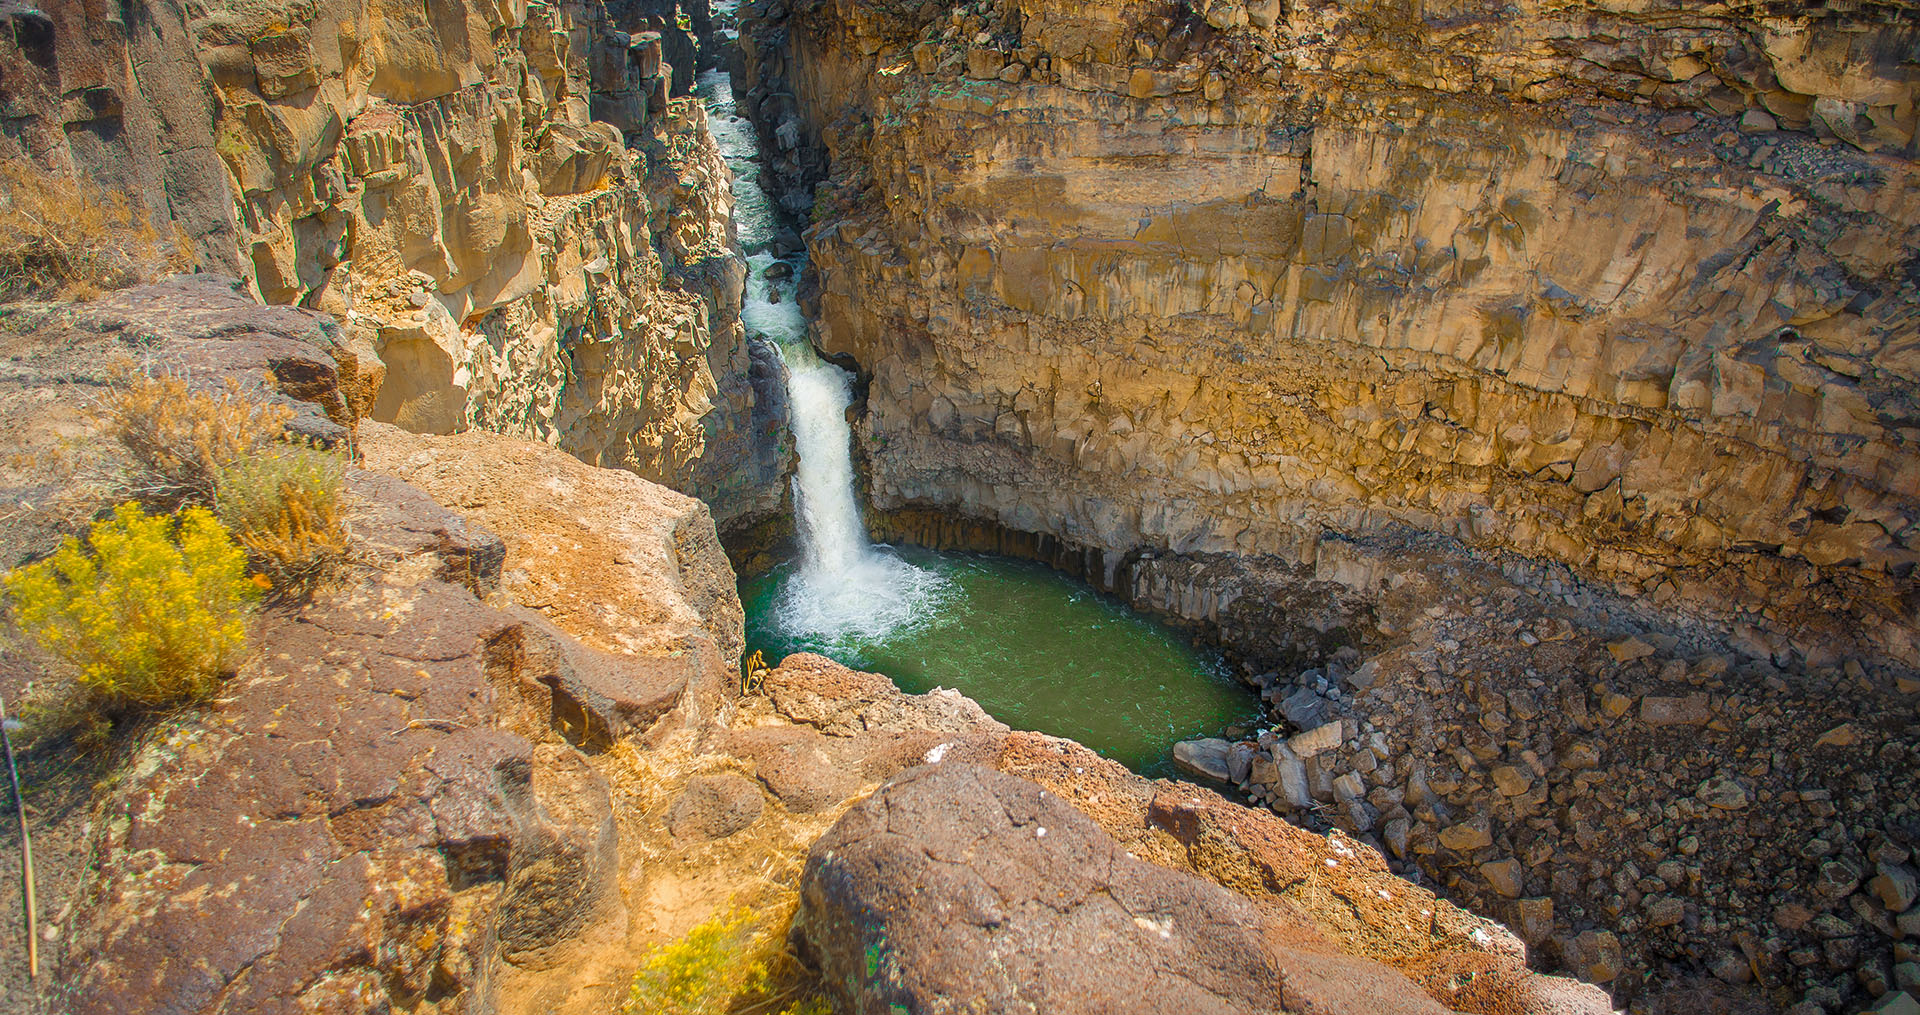 a waterfall in Malad Gorge